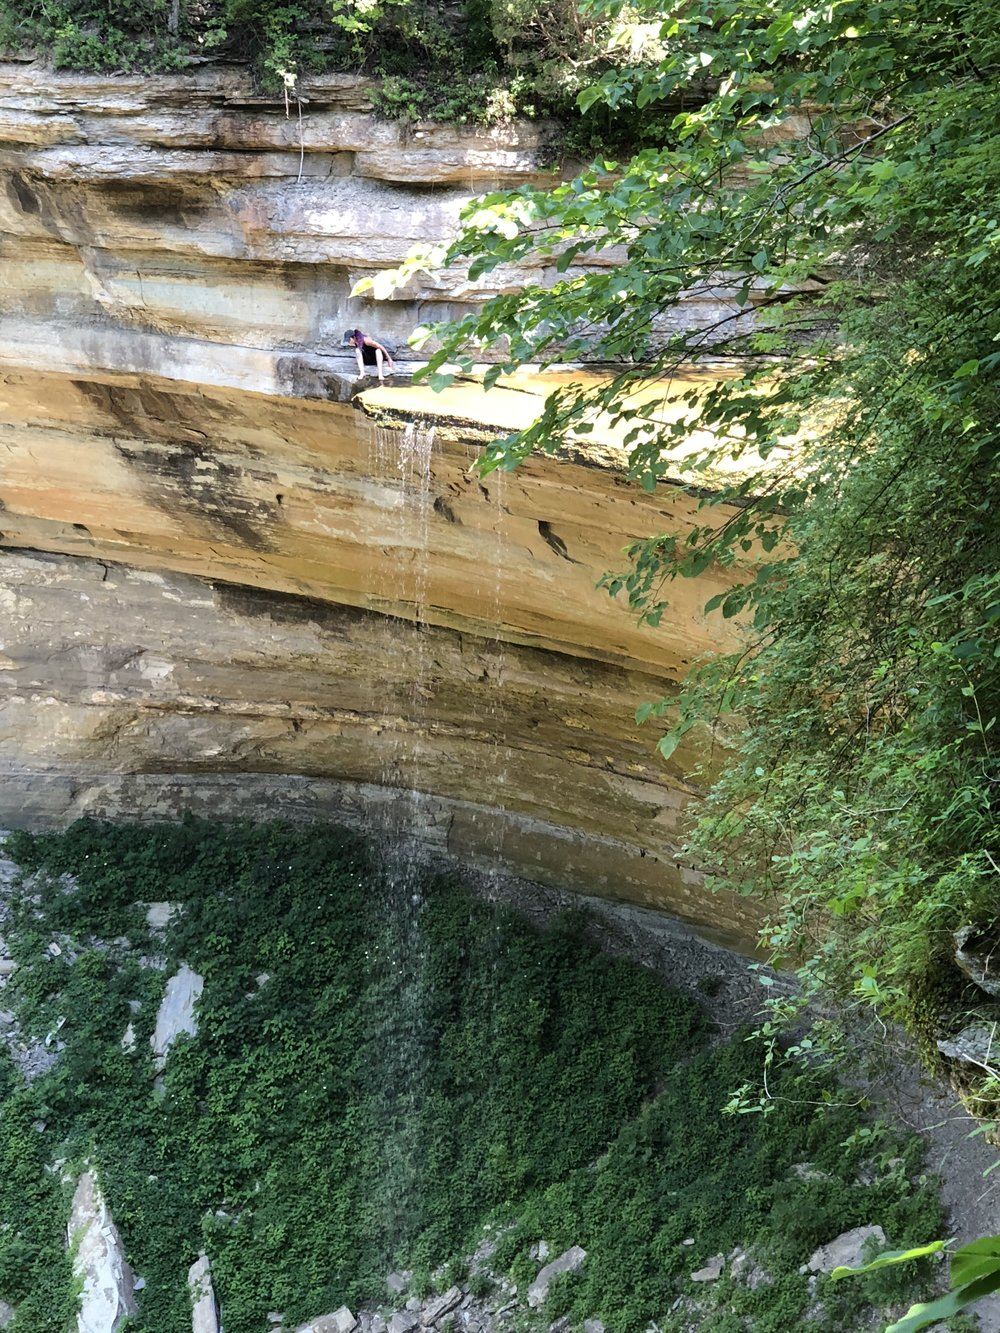 Clifty Falls has beautiful hiking. No, not me in this photo. I believe in taking risks but not putting my life in danger.